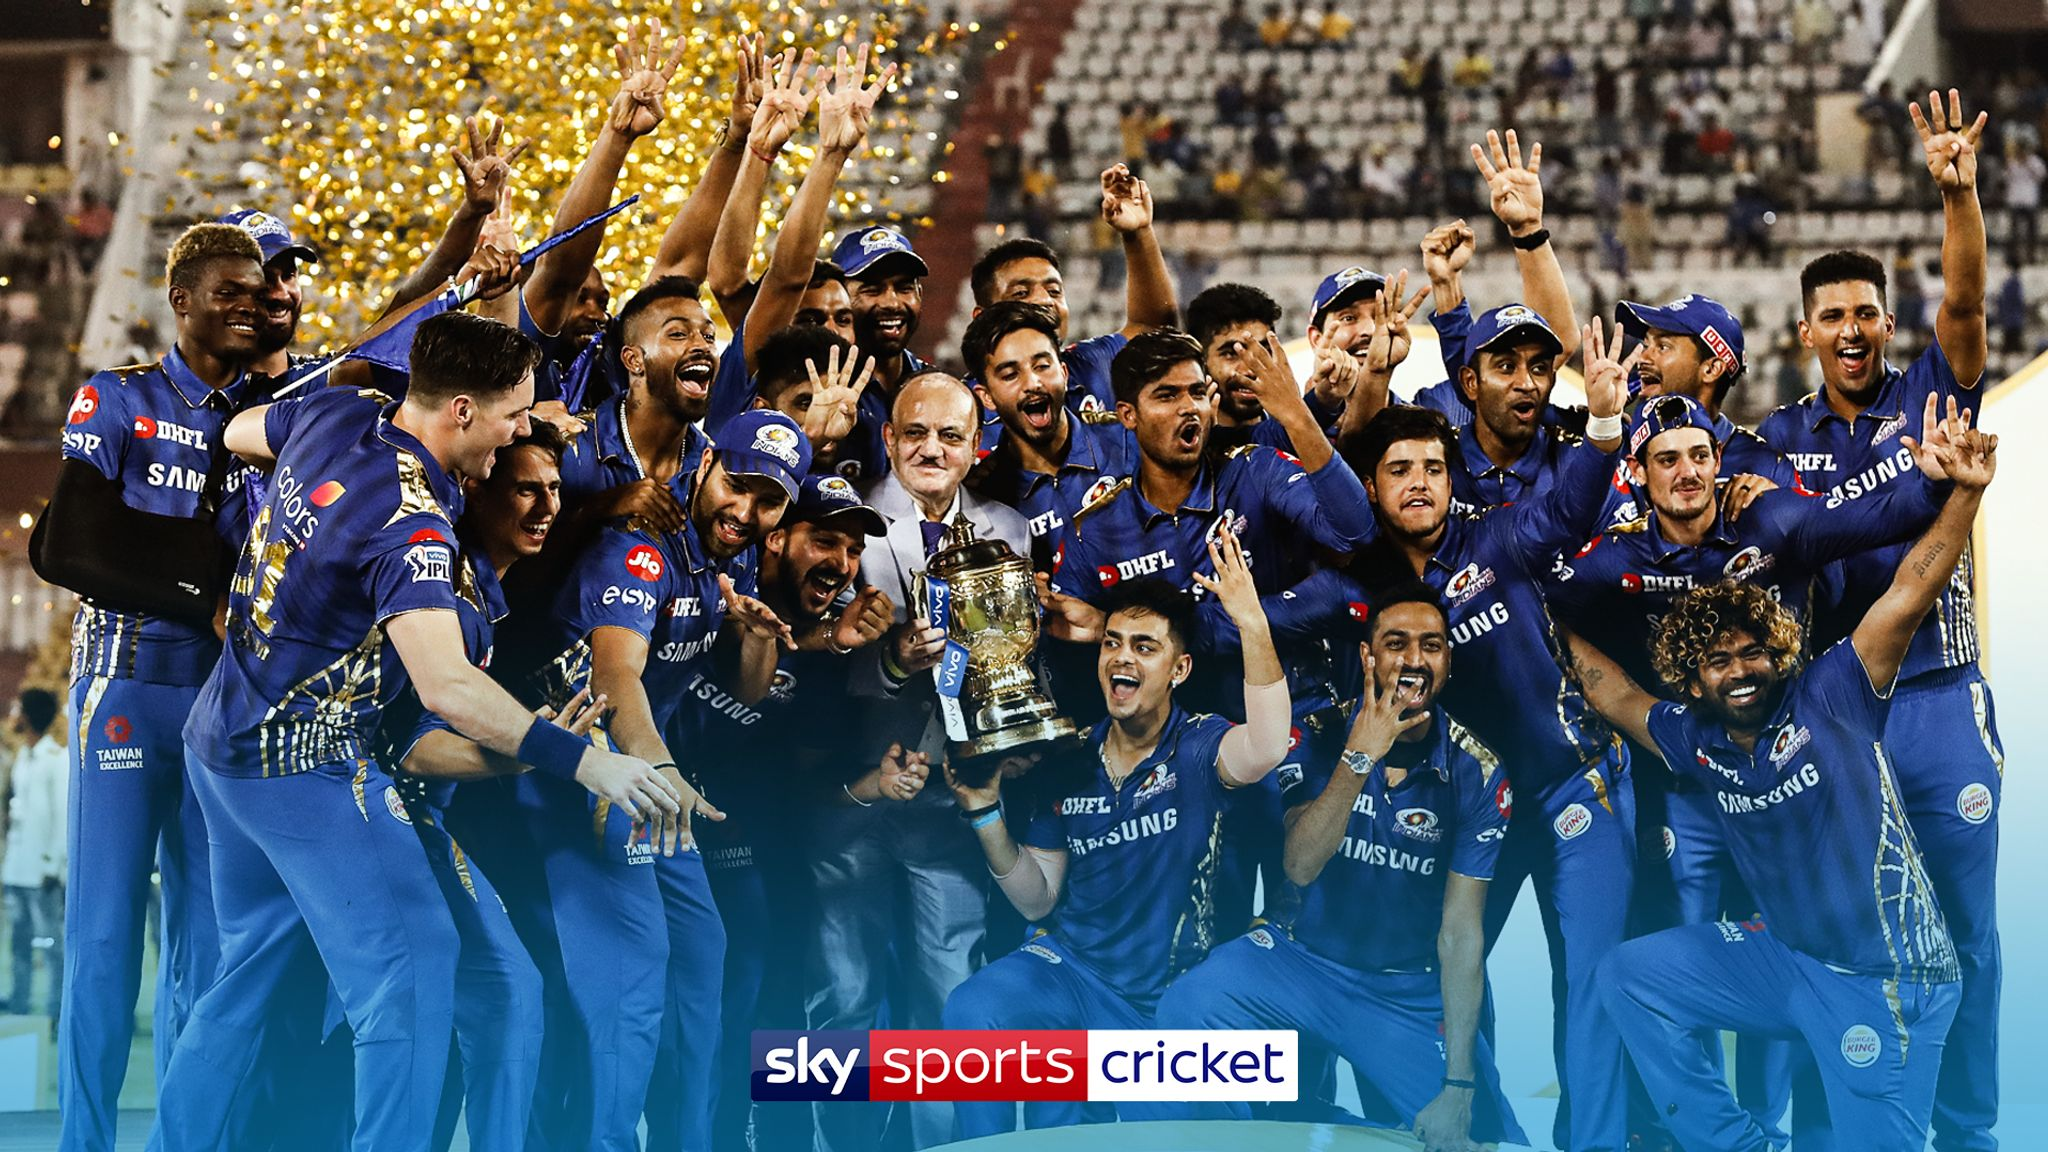 Ipl Returns To Sky Sports In 2020 As Part Of A Three Year Contract Cricket News Sky Sports